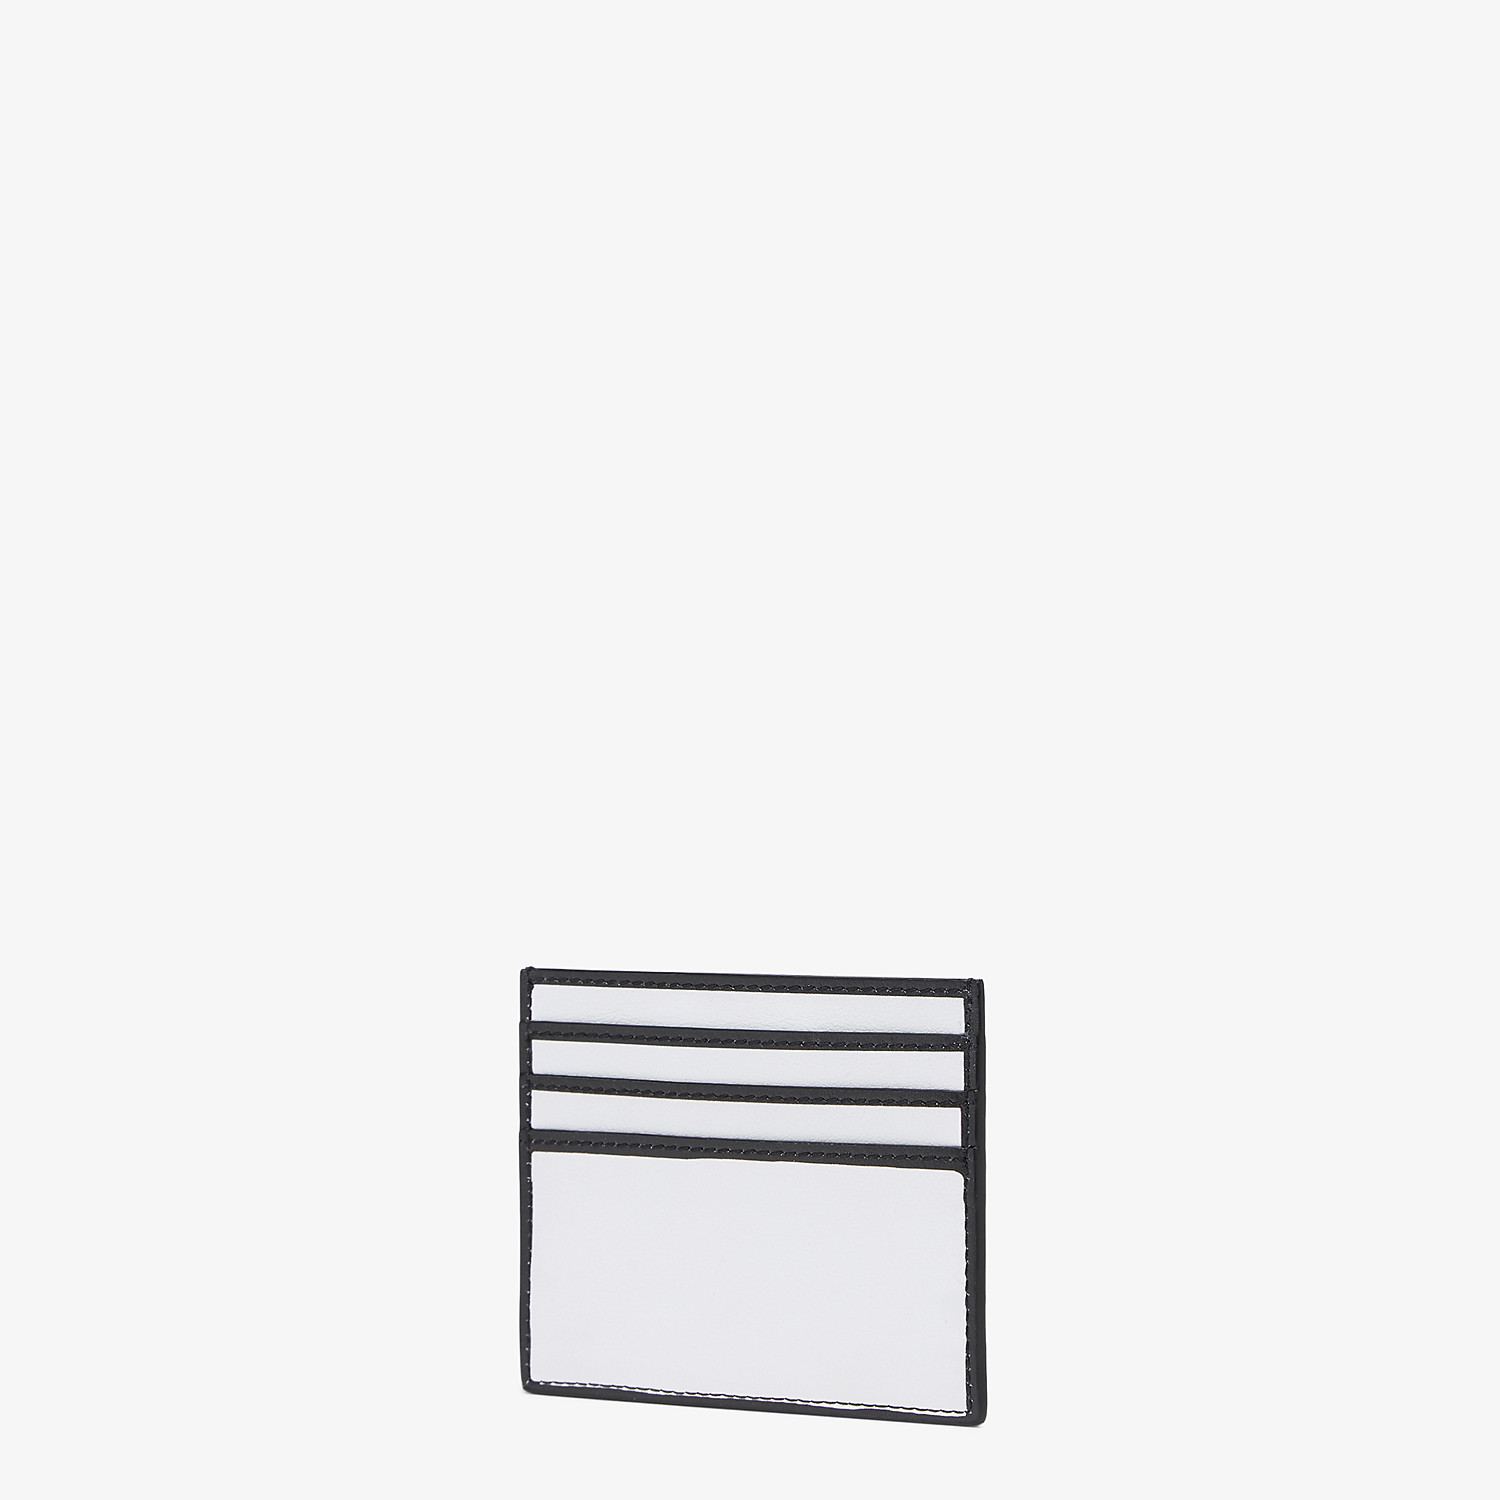 FENDI CARD HOLDER - Fendi Roma Joshua Vides card holder - view 2 detail